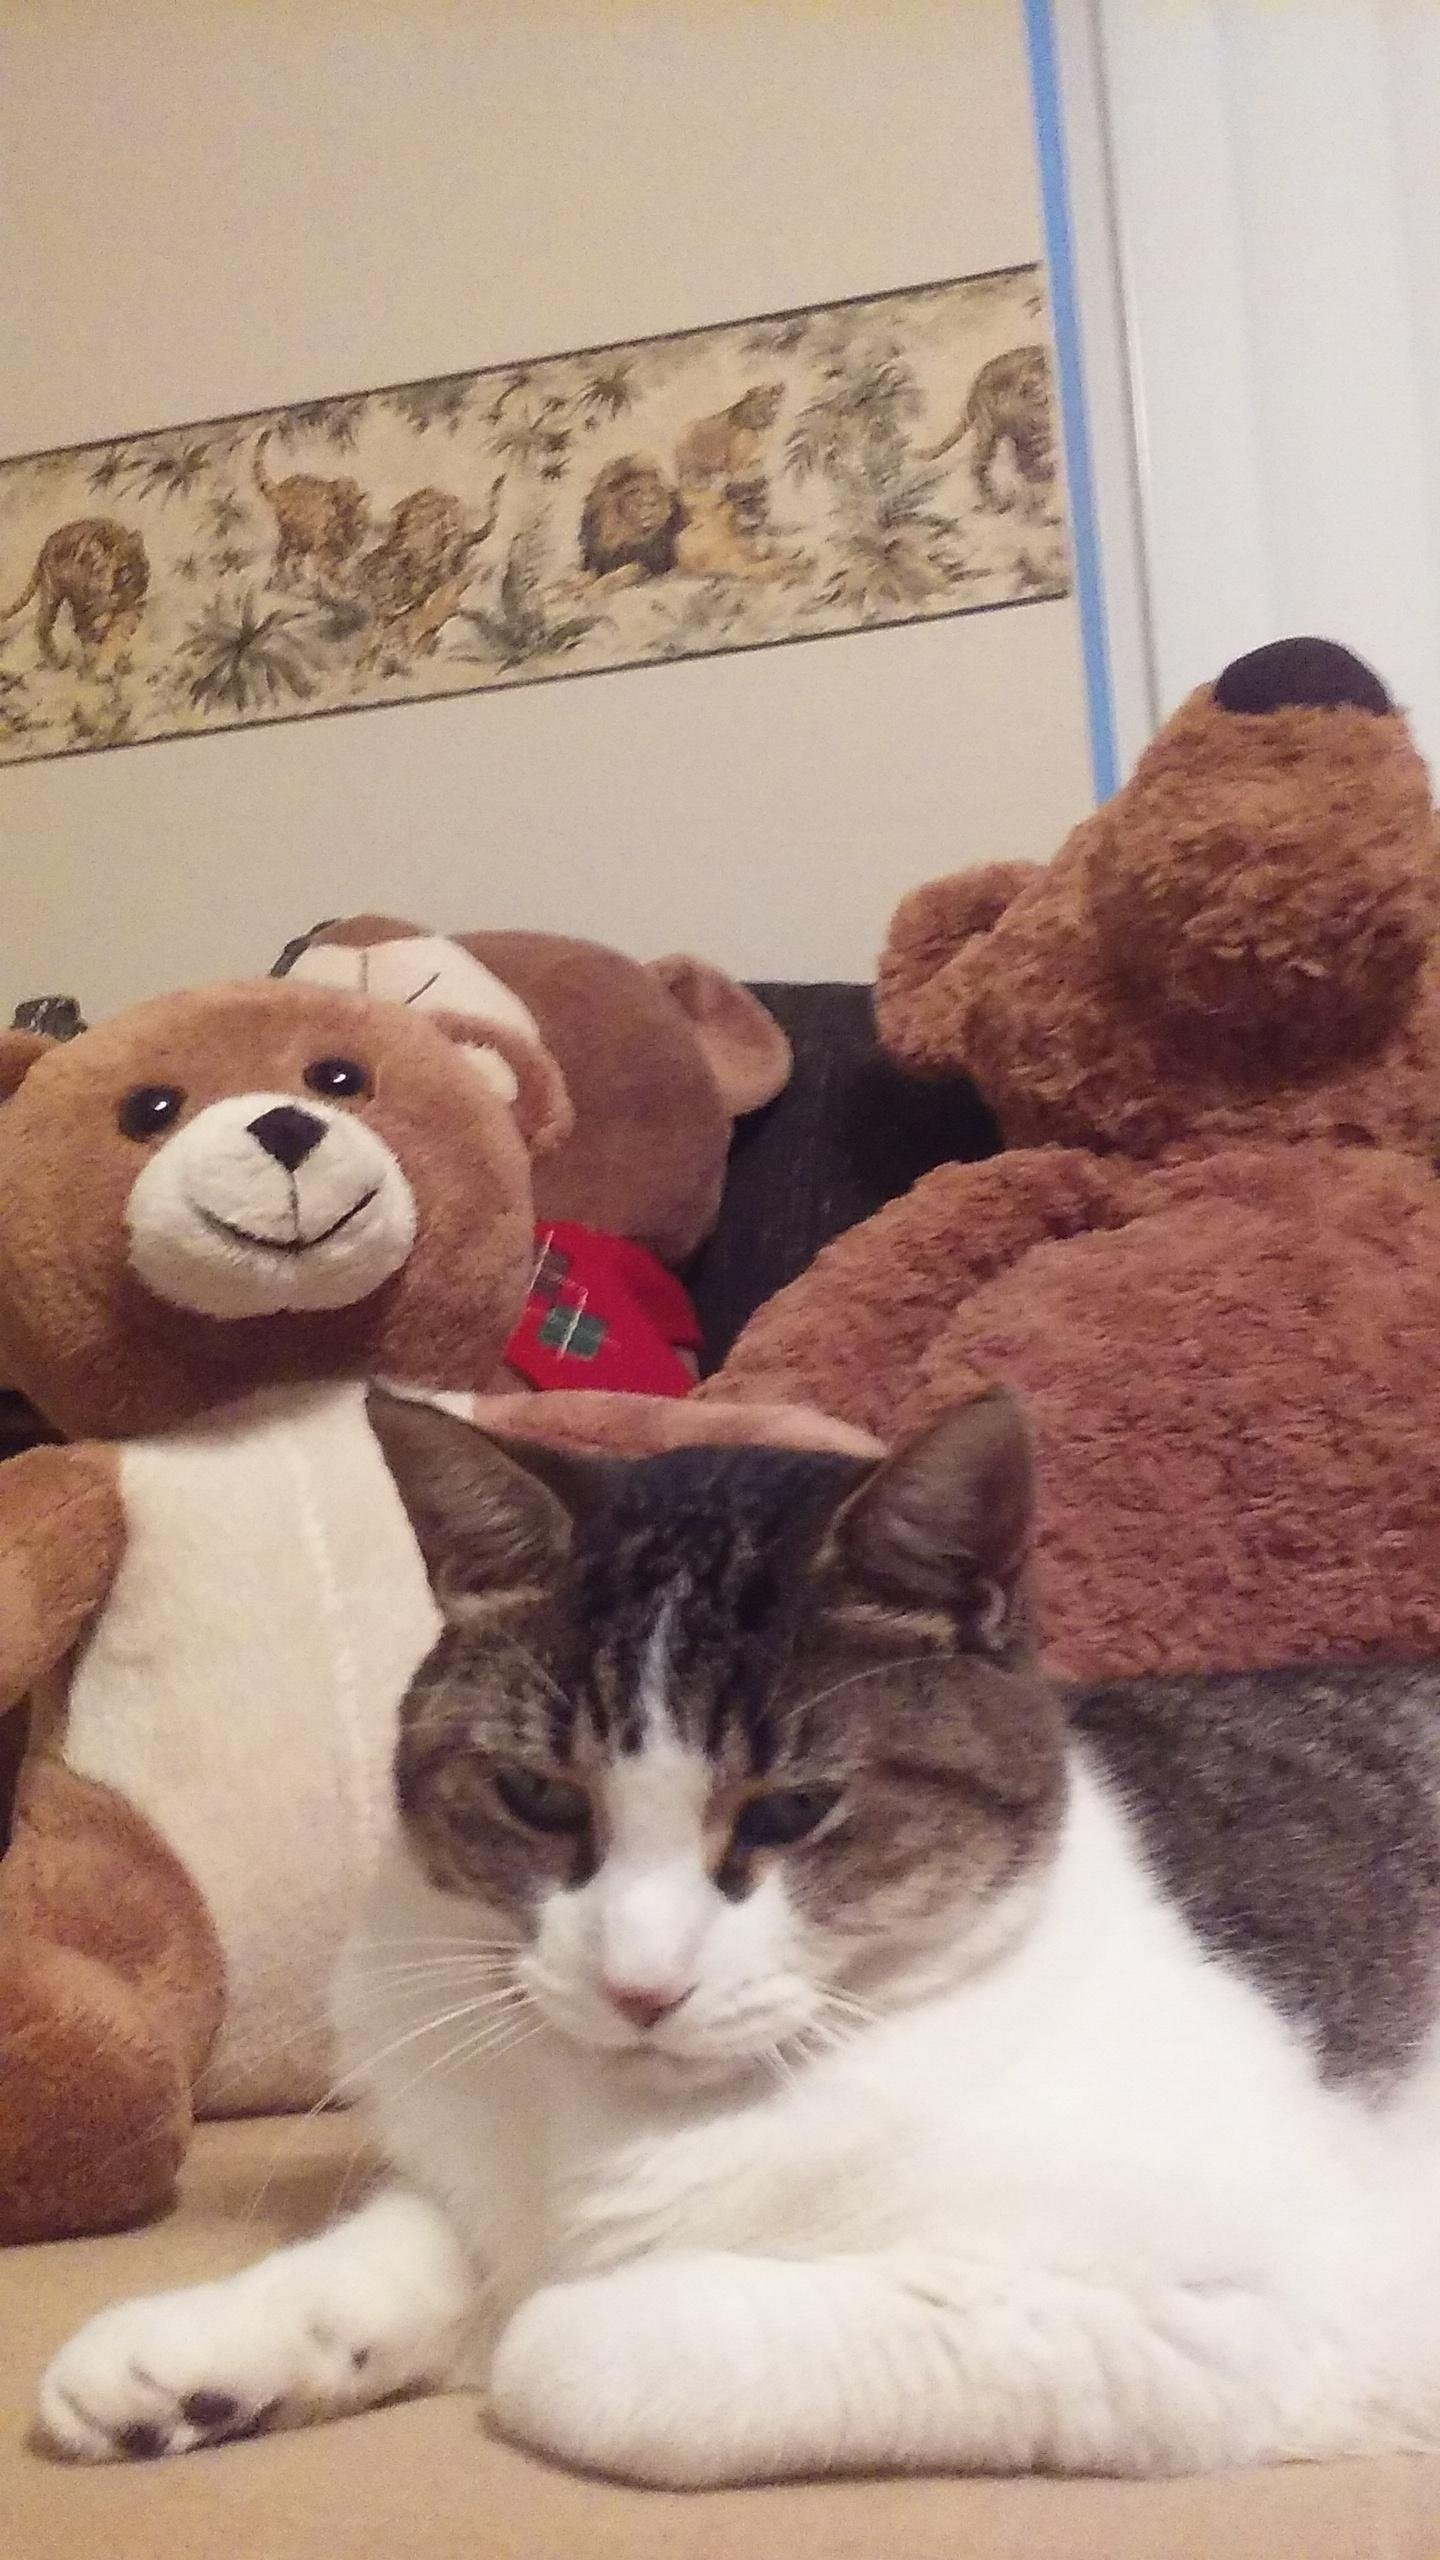 Unimused with the teddy bears